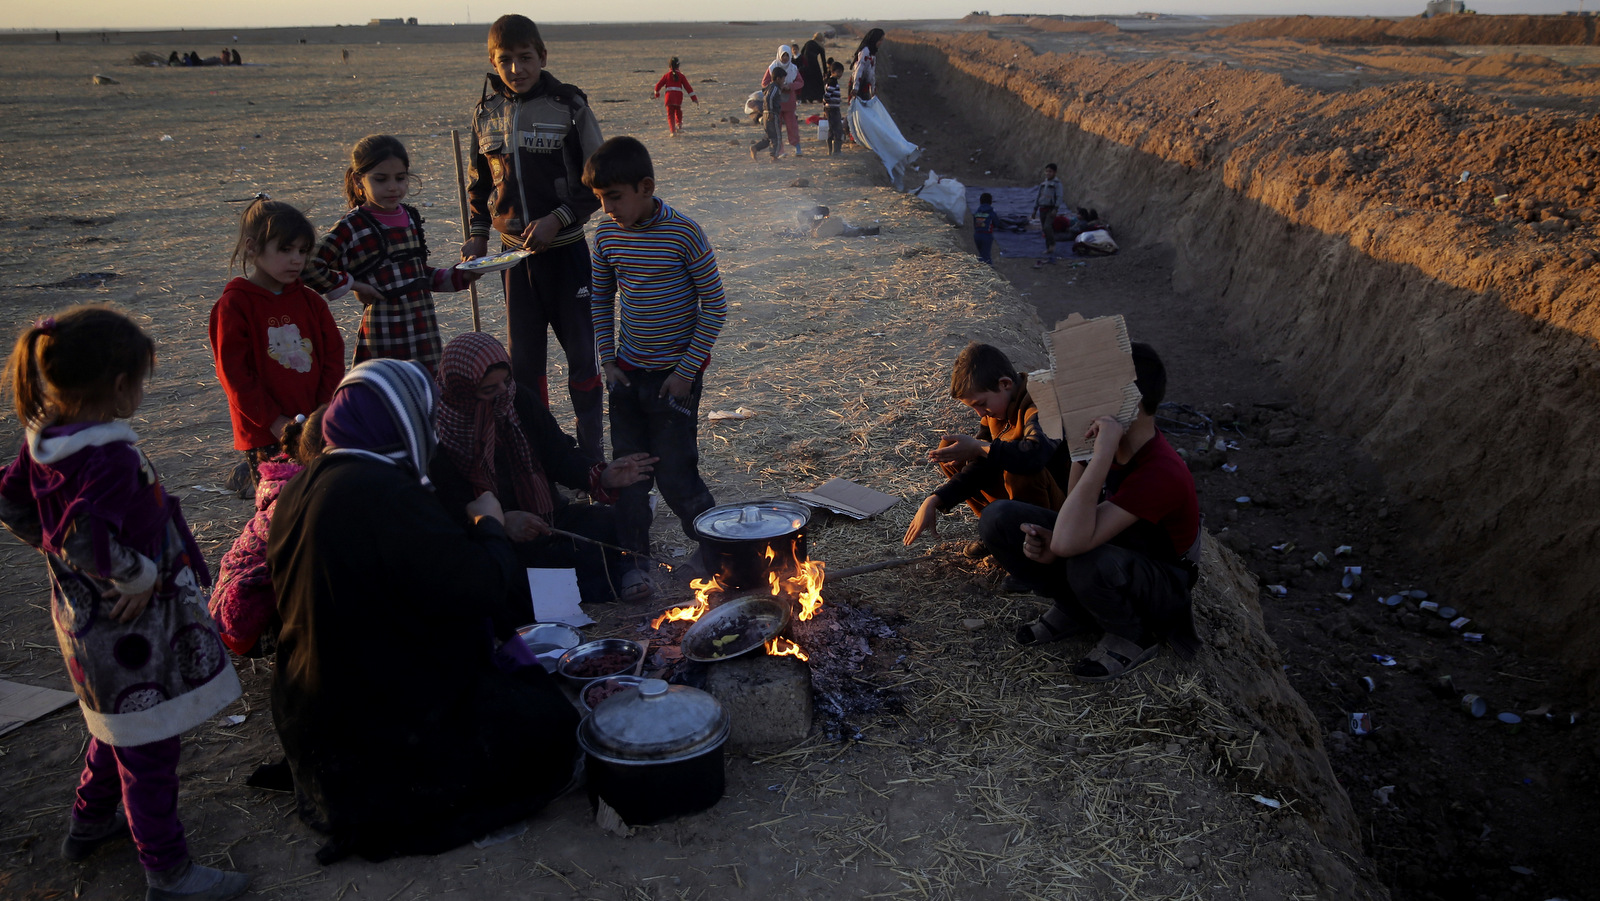 Families who fled ISIS cook next to a trench created by Kurdish forces to demarcate their border, as they wait to cross to the Kurdish areas, in the Nineveh plain, northeast of Mosul. The sand berms and trenches snake across northern Iraq into Syria, alongside newly paved roads and sprawling checkpoints decked with Kurdish flags, in what increasingly resembles an international border. (AP/Hussein Malla)